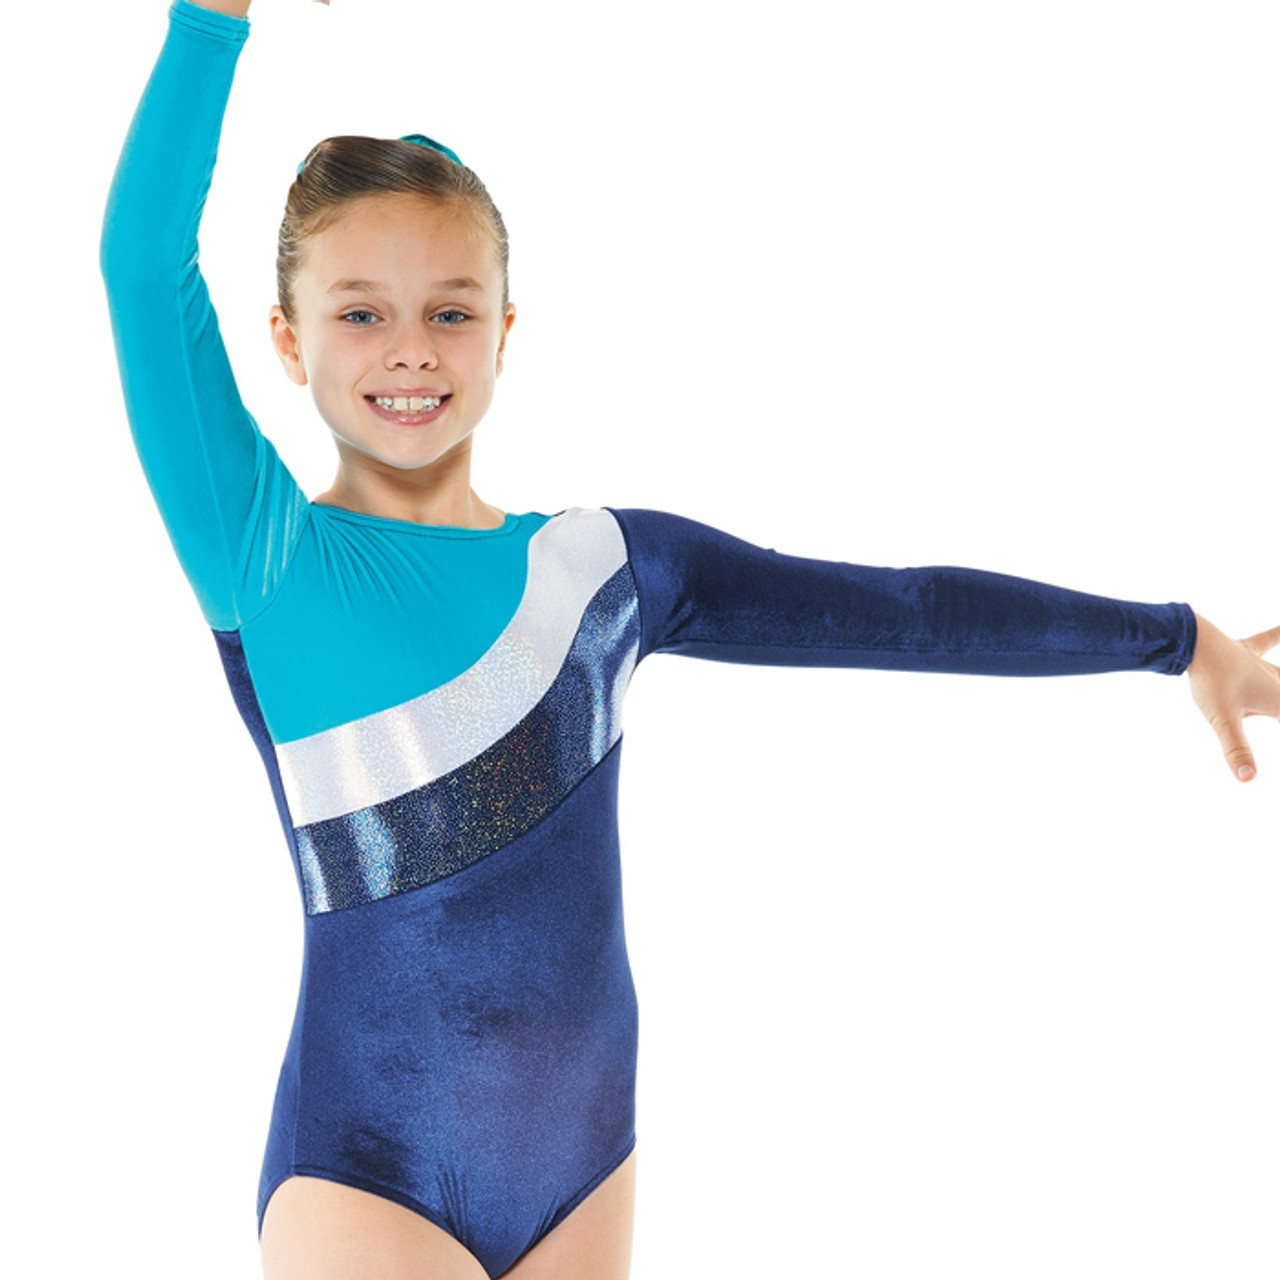 206b01c5c TAPPERS   POINTERS GYM 16 VELVET AND COSMIC SHINE LEOTARD - 4 dance